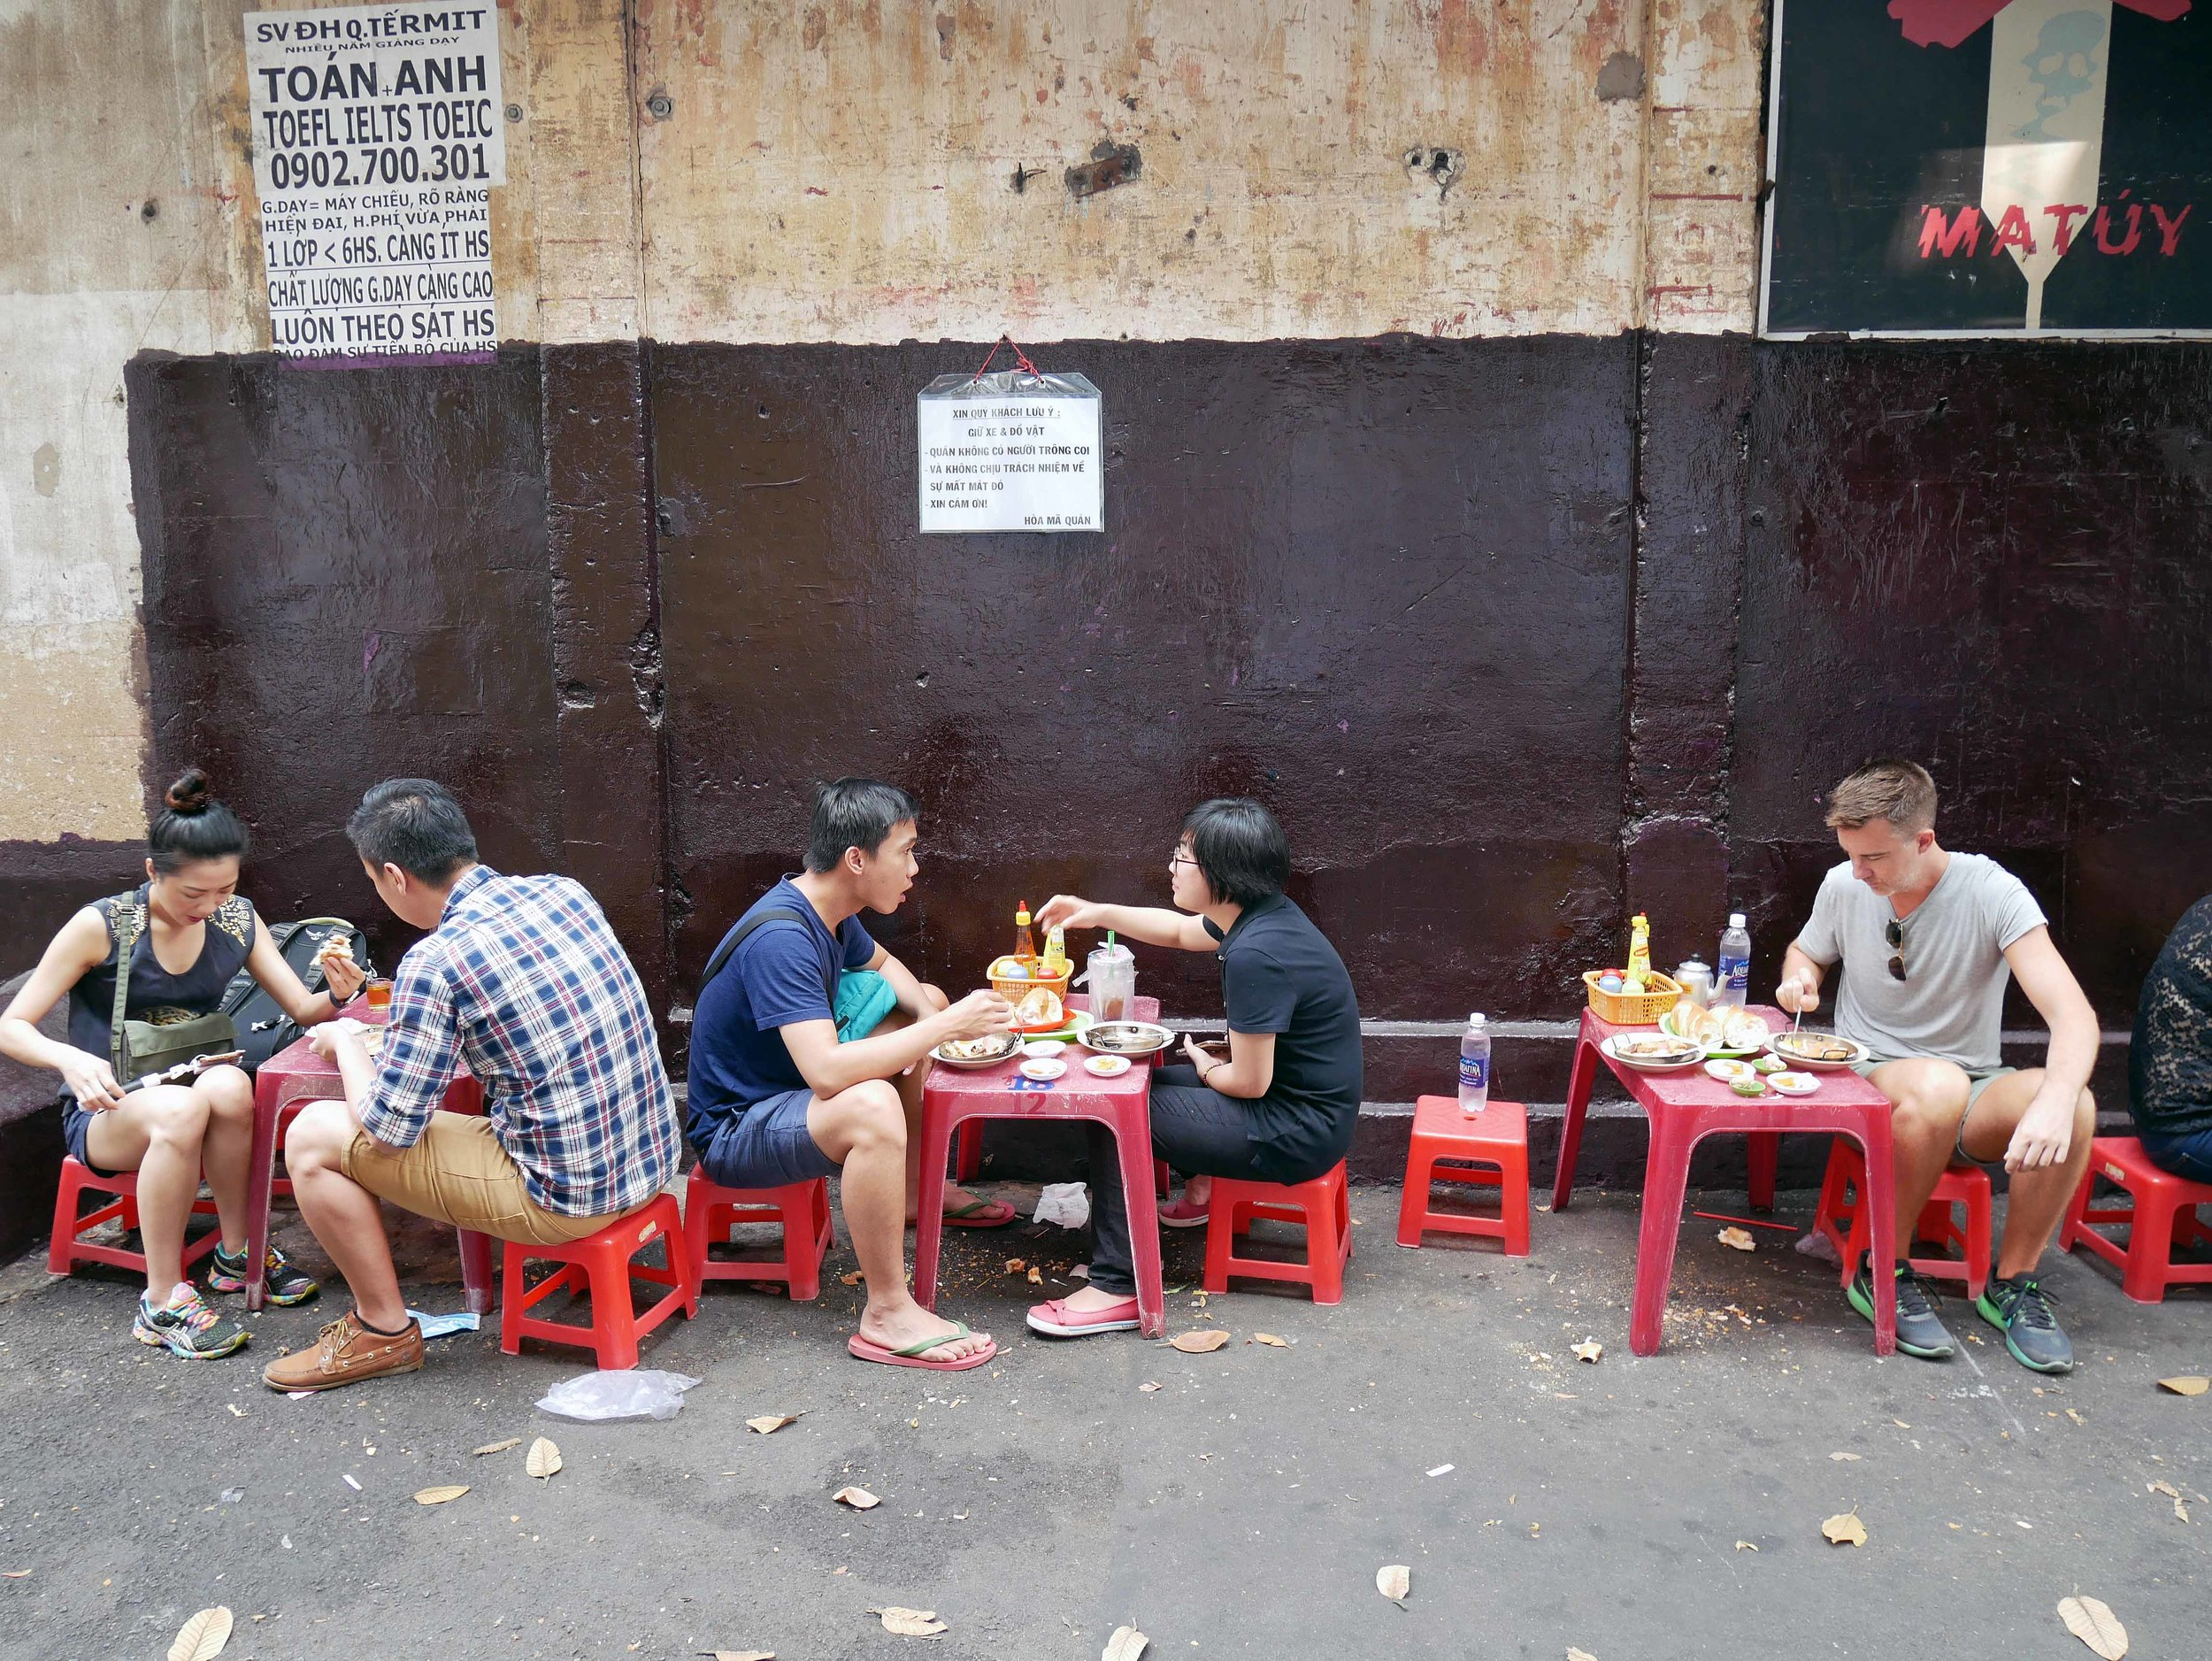 For breakfast the next morning, we found ourselves sitting in the alleyway at Banh Mi Hoa Ma for eggs and coffee (March 14).